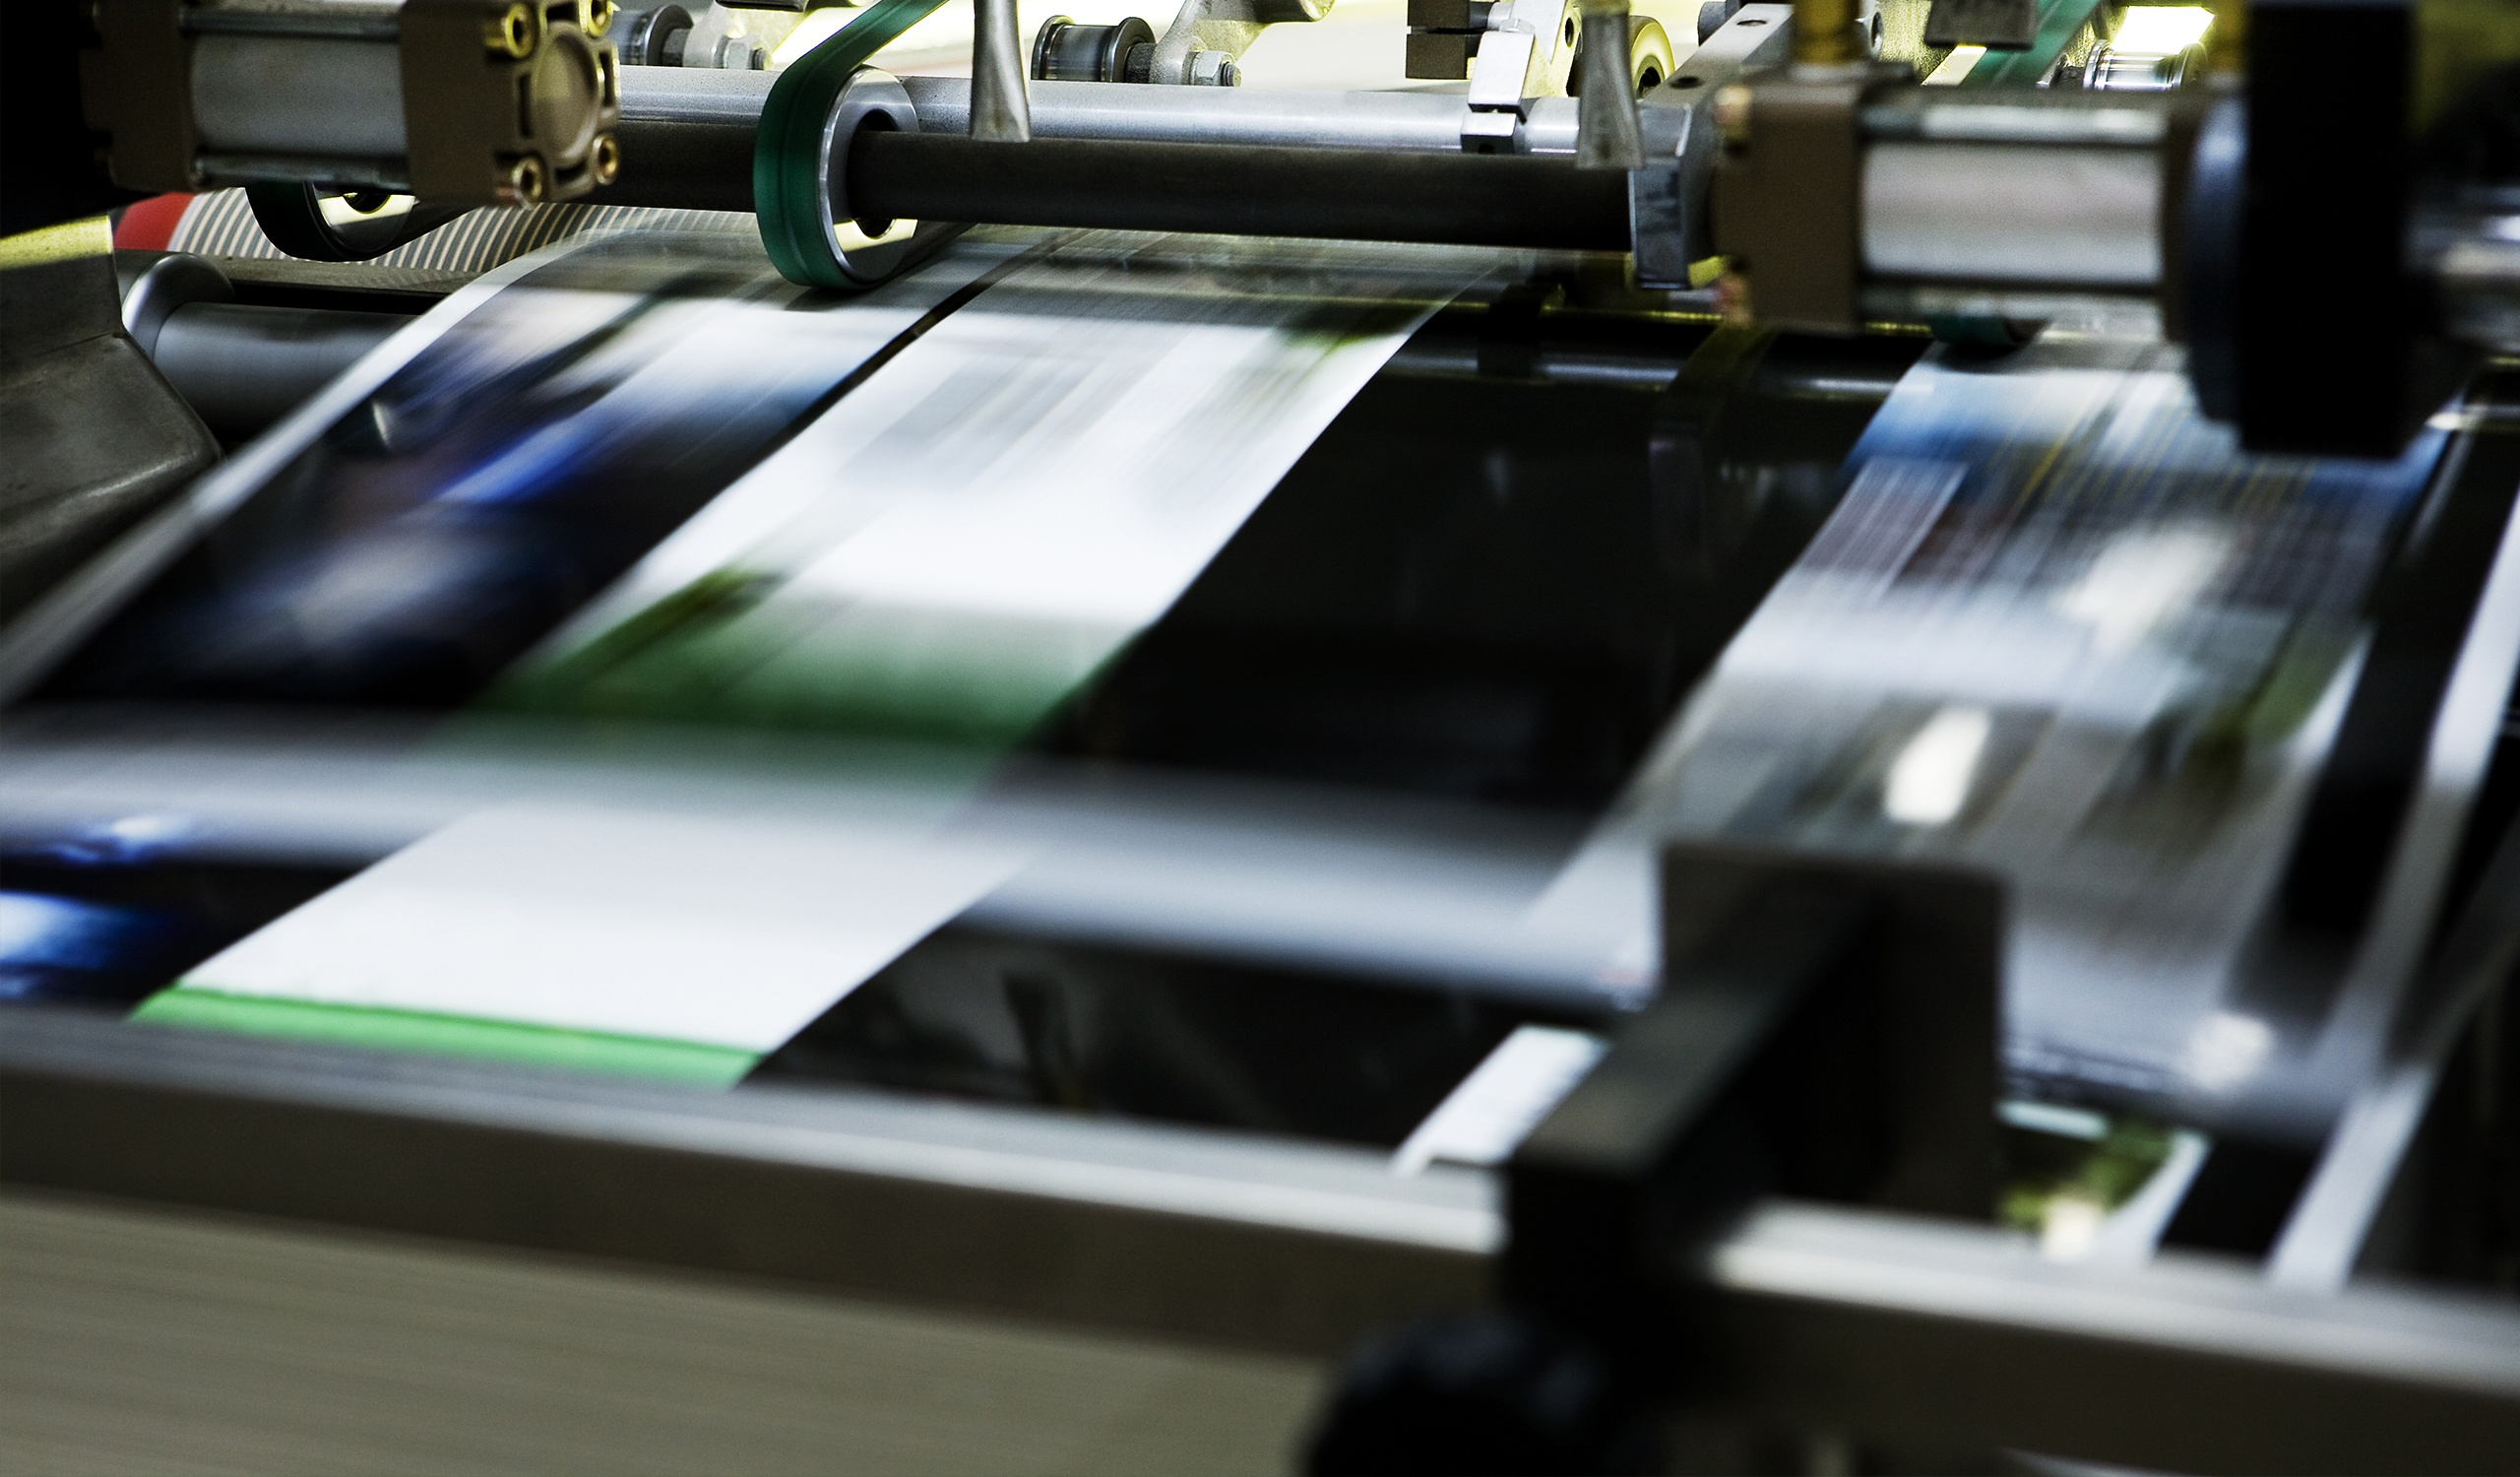 What Is a Digital Printing Press?